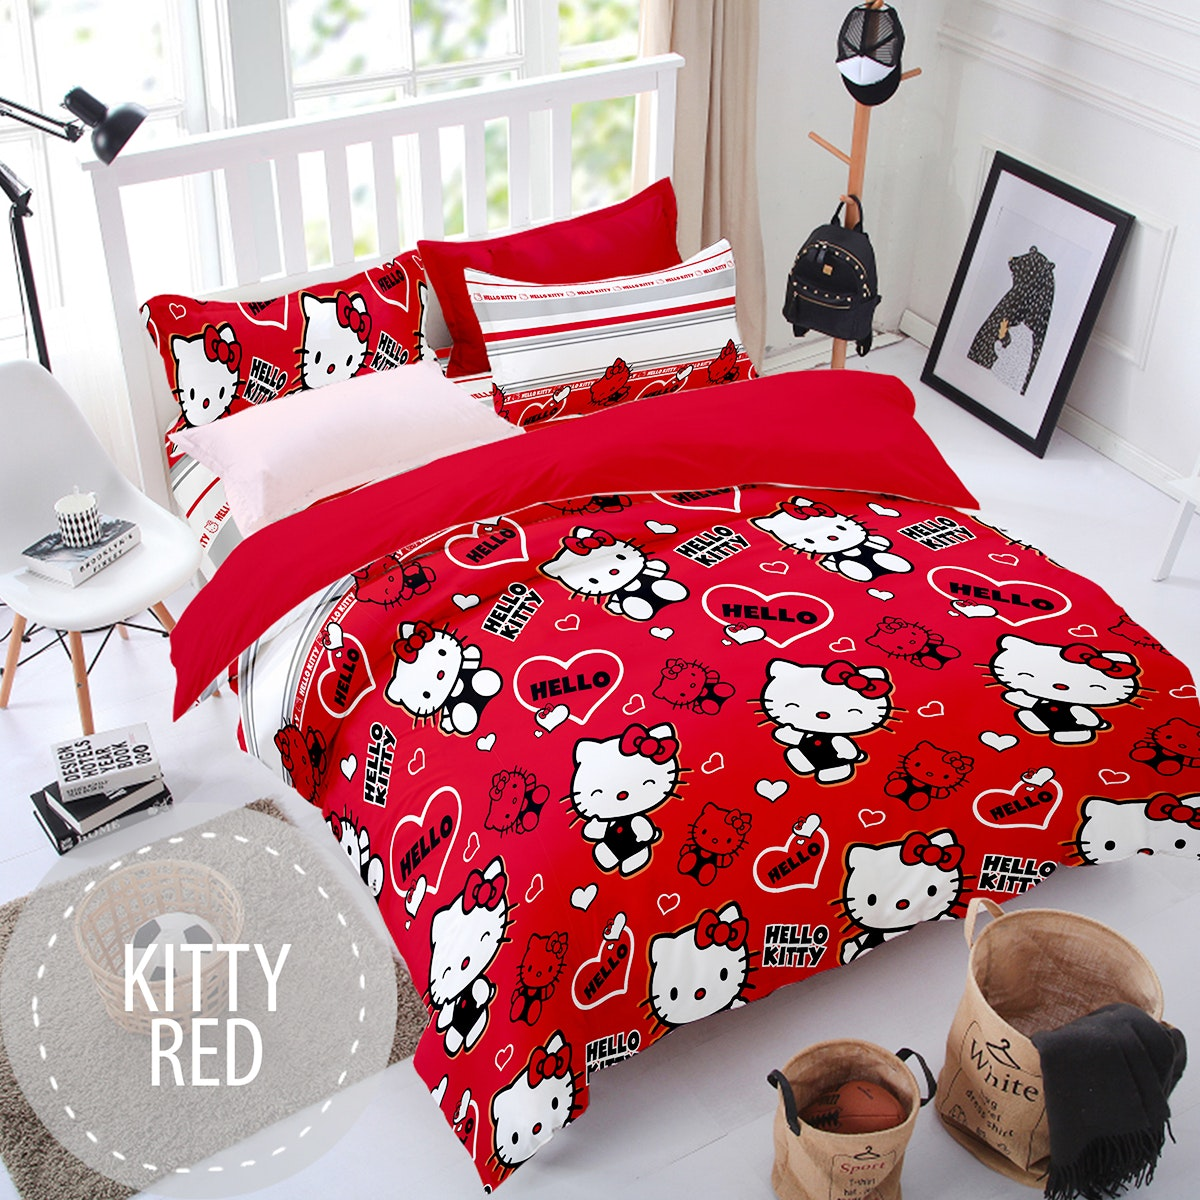 Pesona Sprei Disperse Kitty Red uk 180 T 20